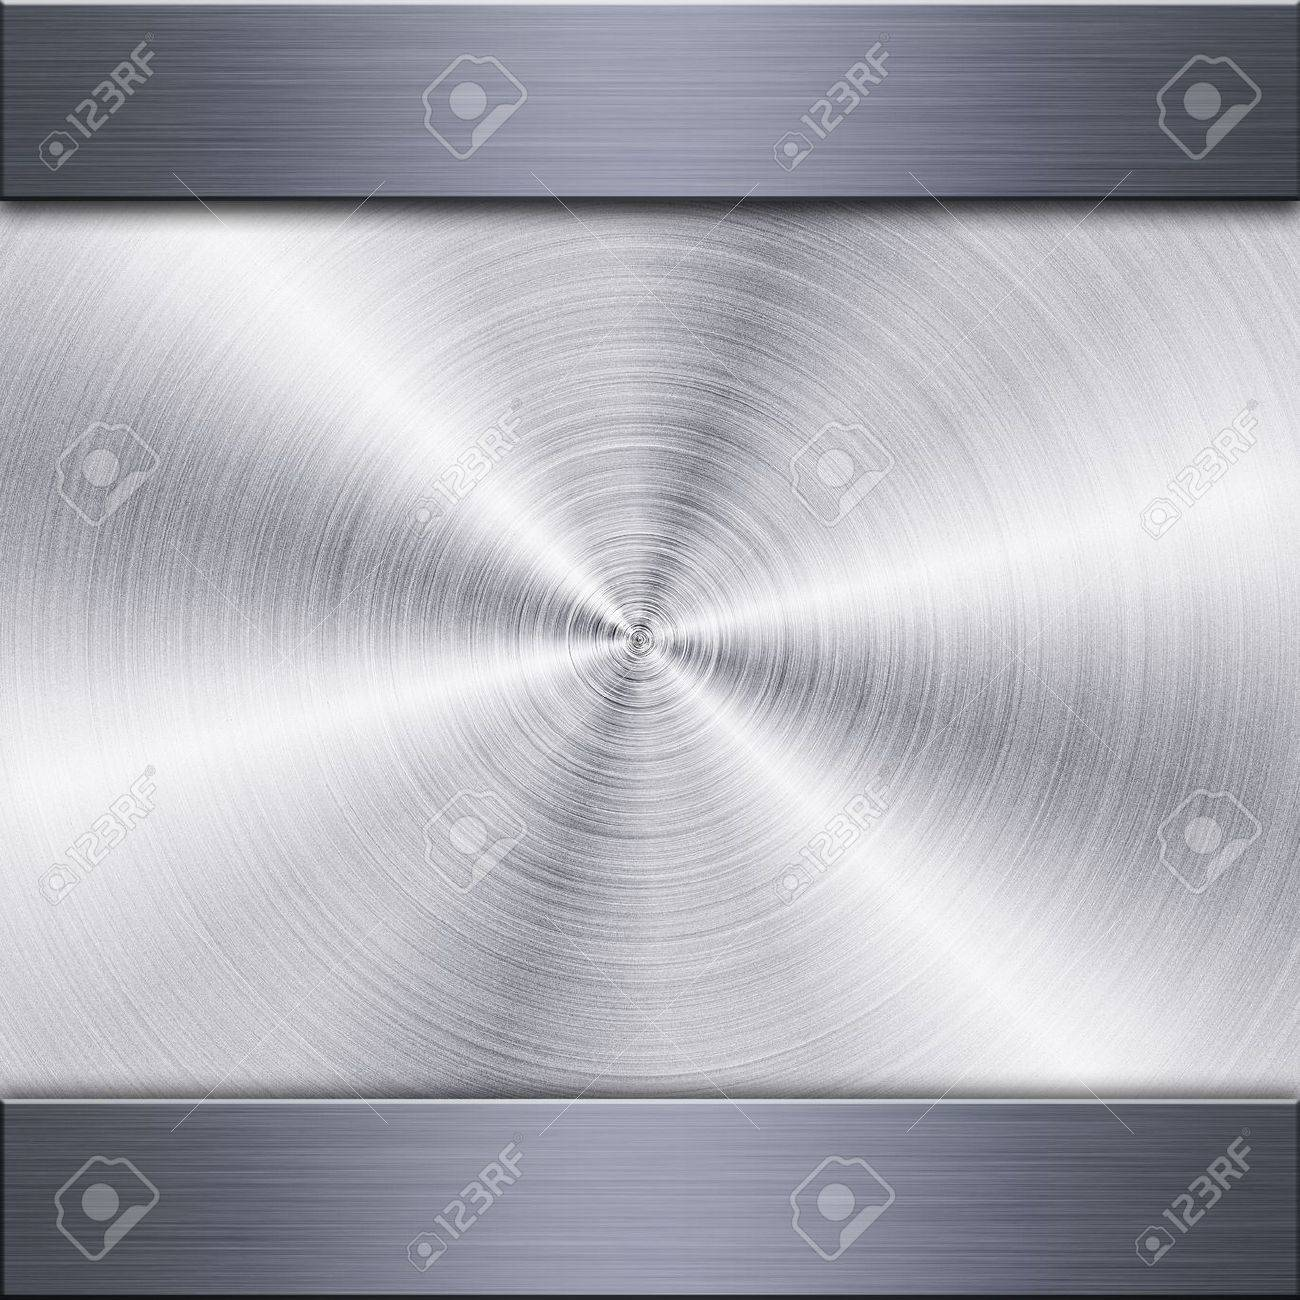 Background of brushed metal plate with reflections in circular shape Stock Photo - 14613825